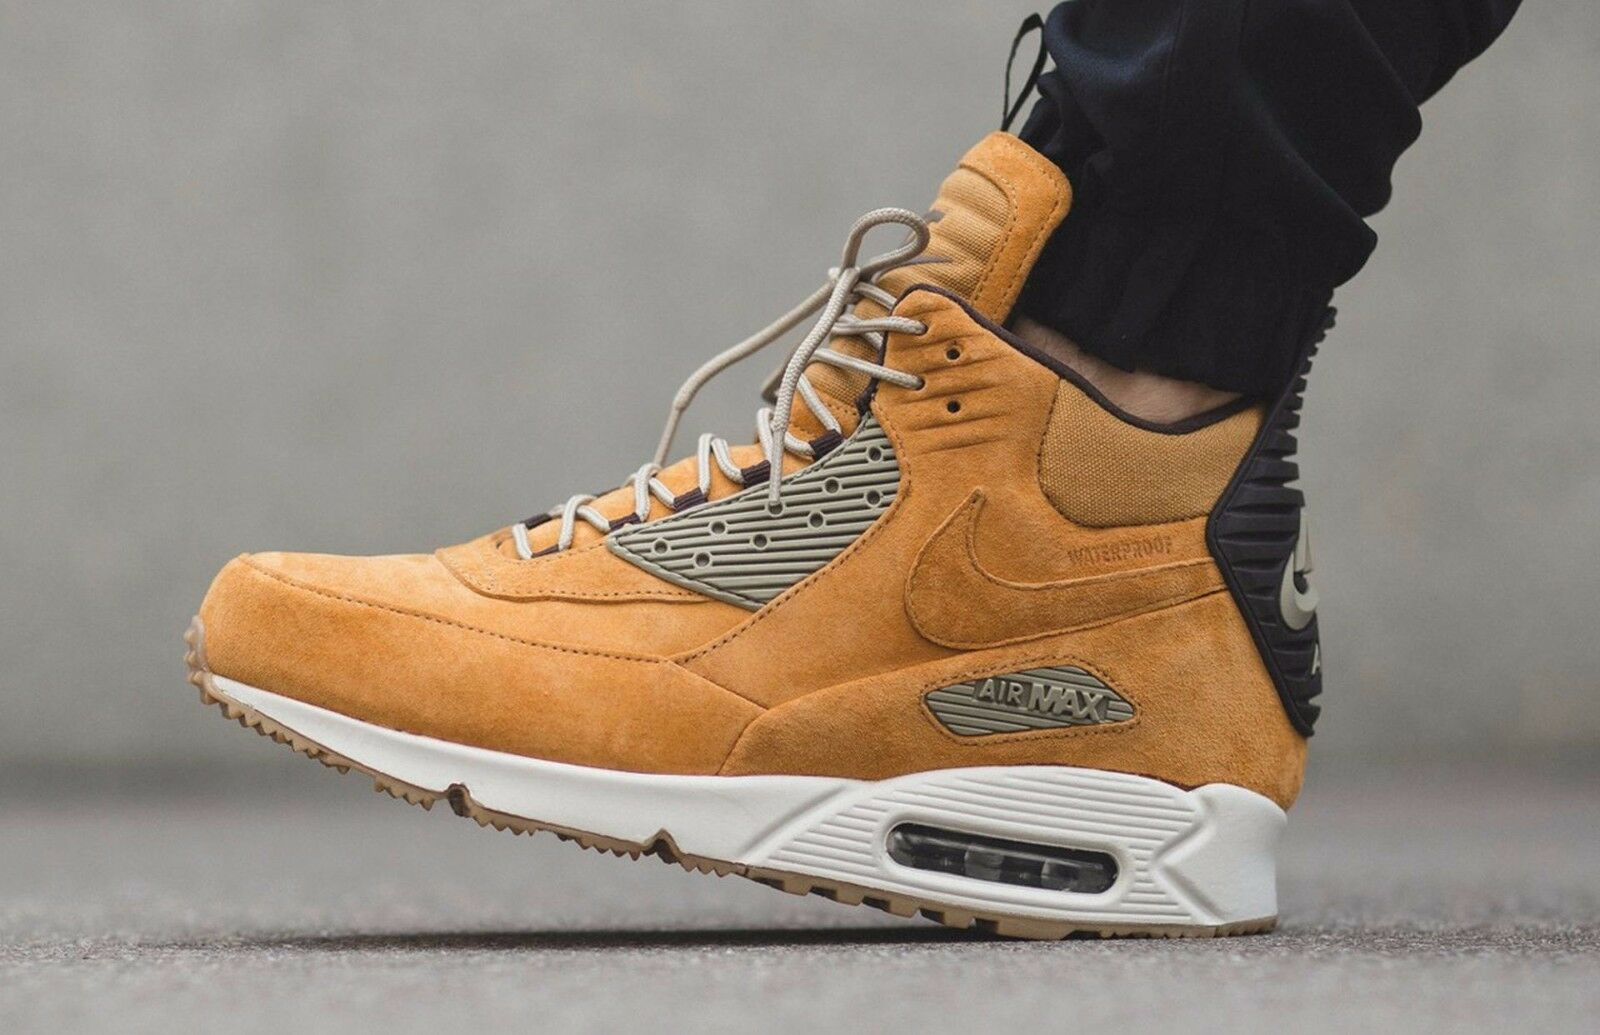 28ae6ed8 Nike Air Max 90 Sneakerboot Winter Waterproof - Wheat 684714-700 Mens Size  12 фото